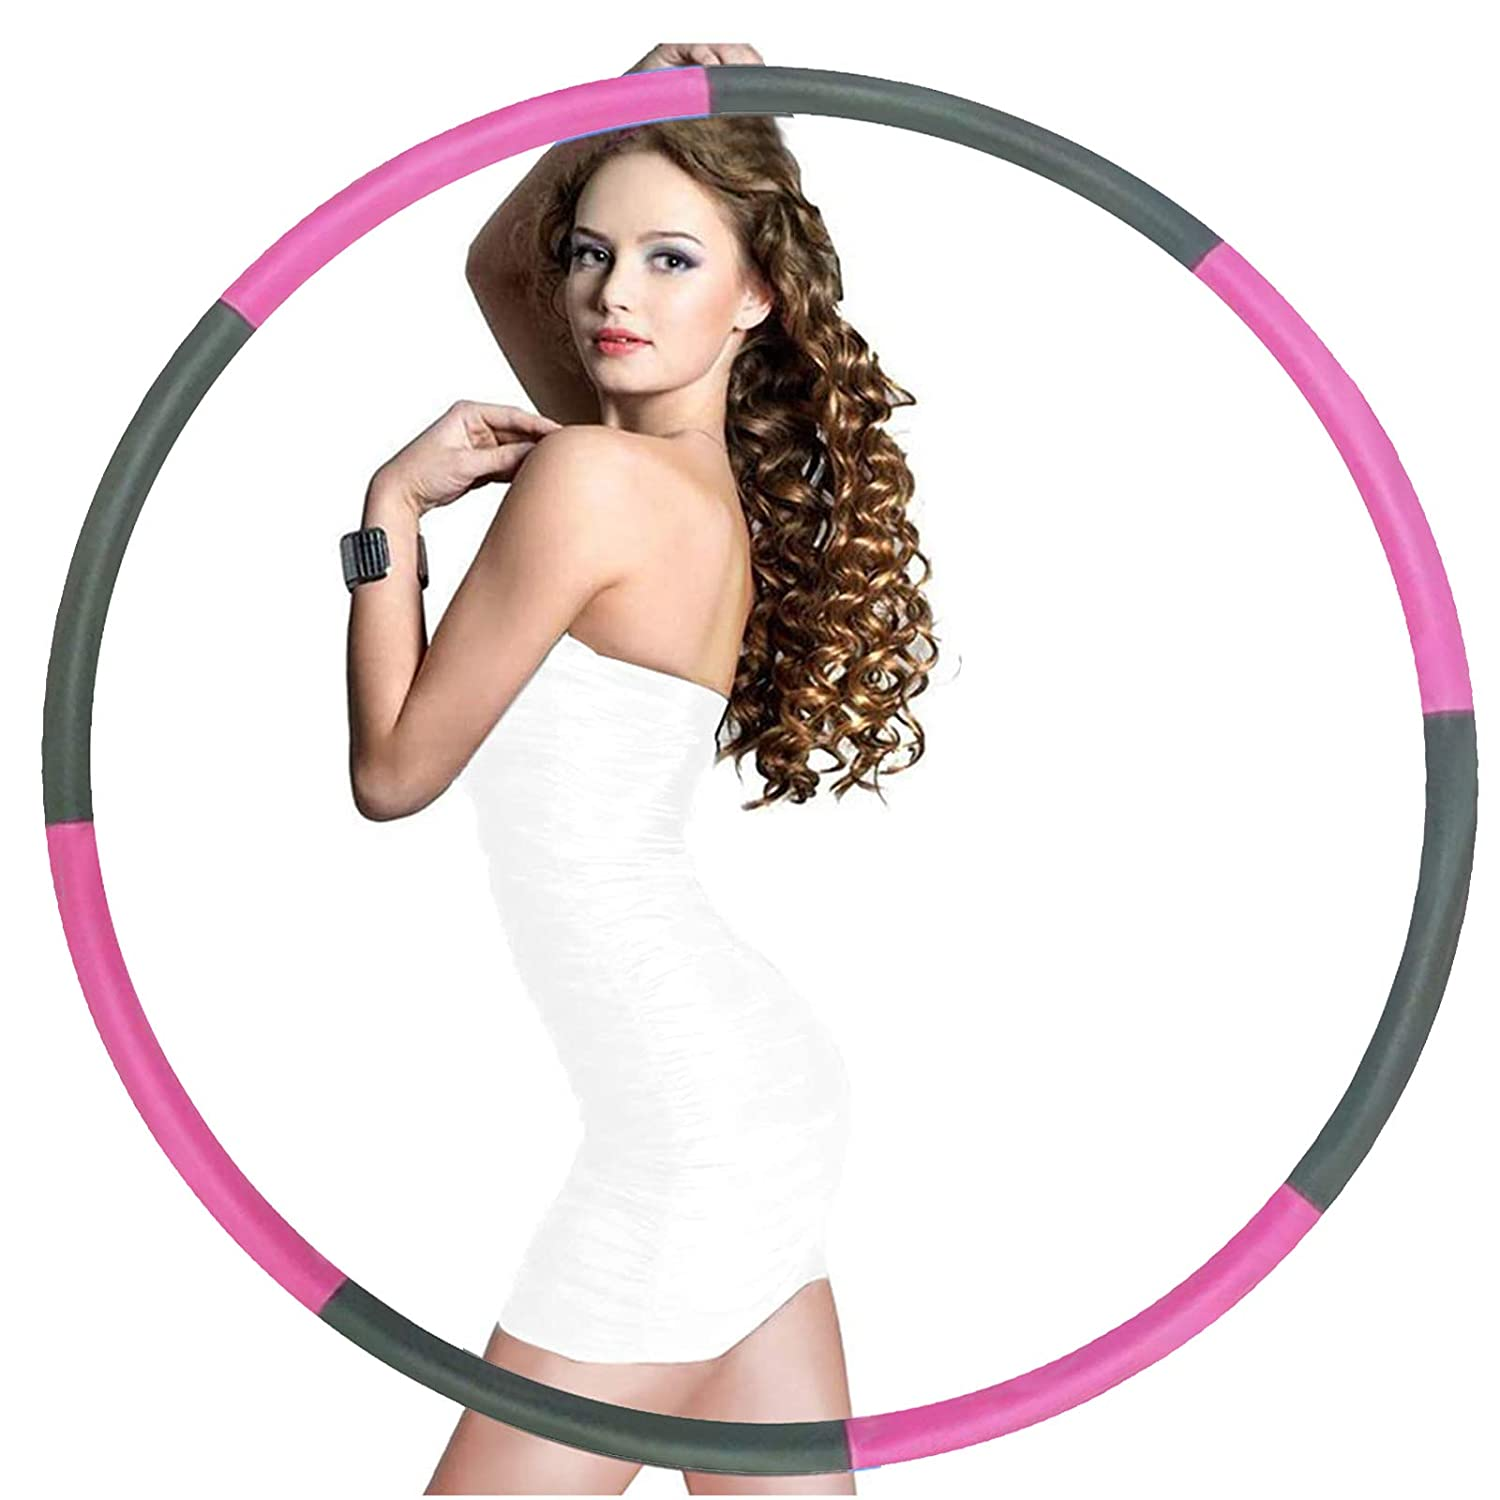 Austin Mall Raoccuy Exercise Hoop - quality assurance Se For 8 Weighted